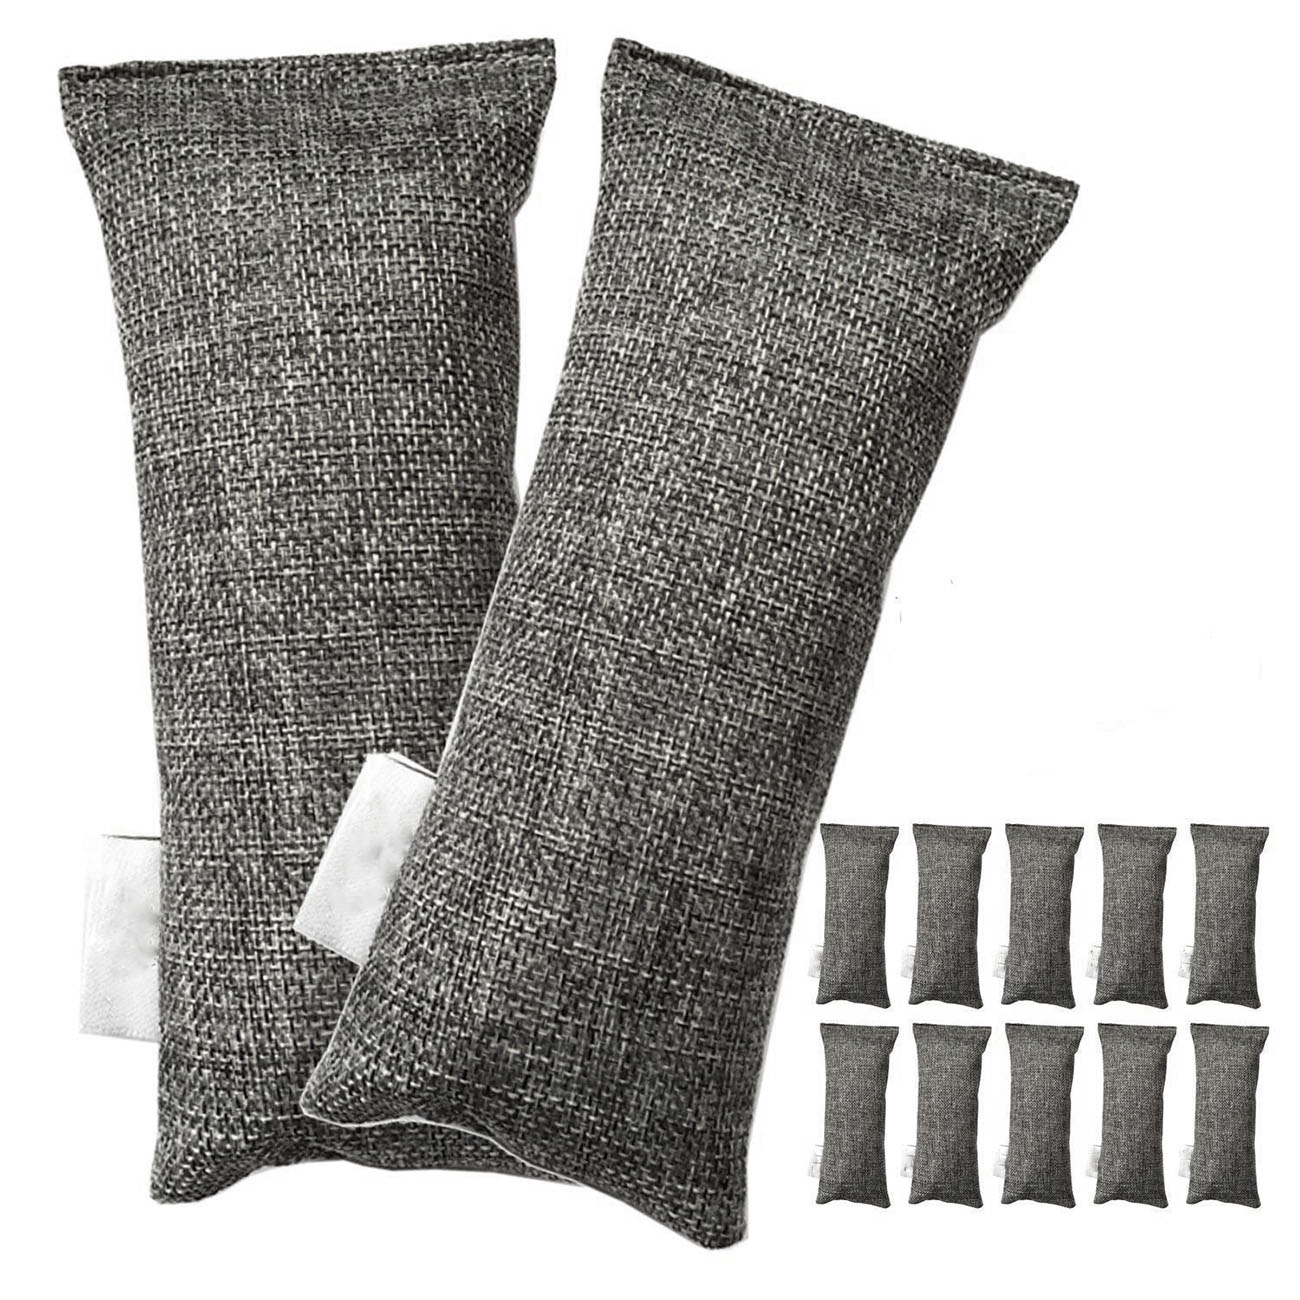 Hot Sale 12 Packs Each Mini Bamboo Charcoal Bags Natural Air Purifier, Shoe Deodorizer And Odor Eliminator Pack Of 12 Bags